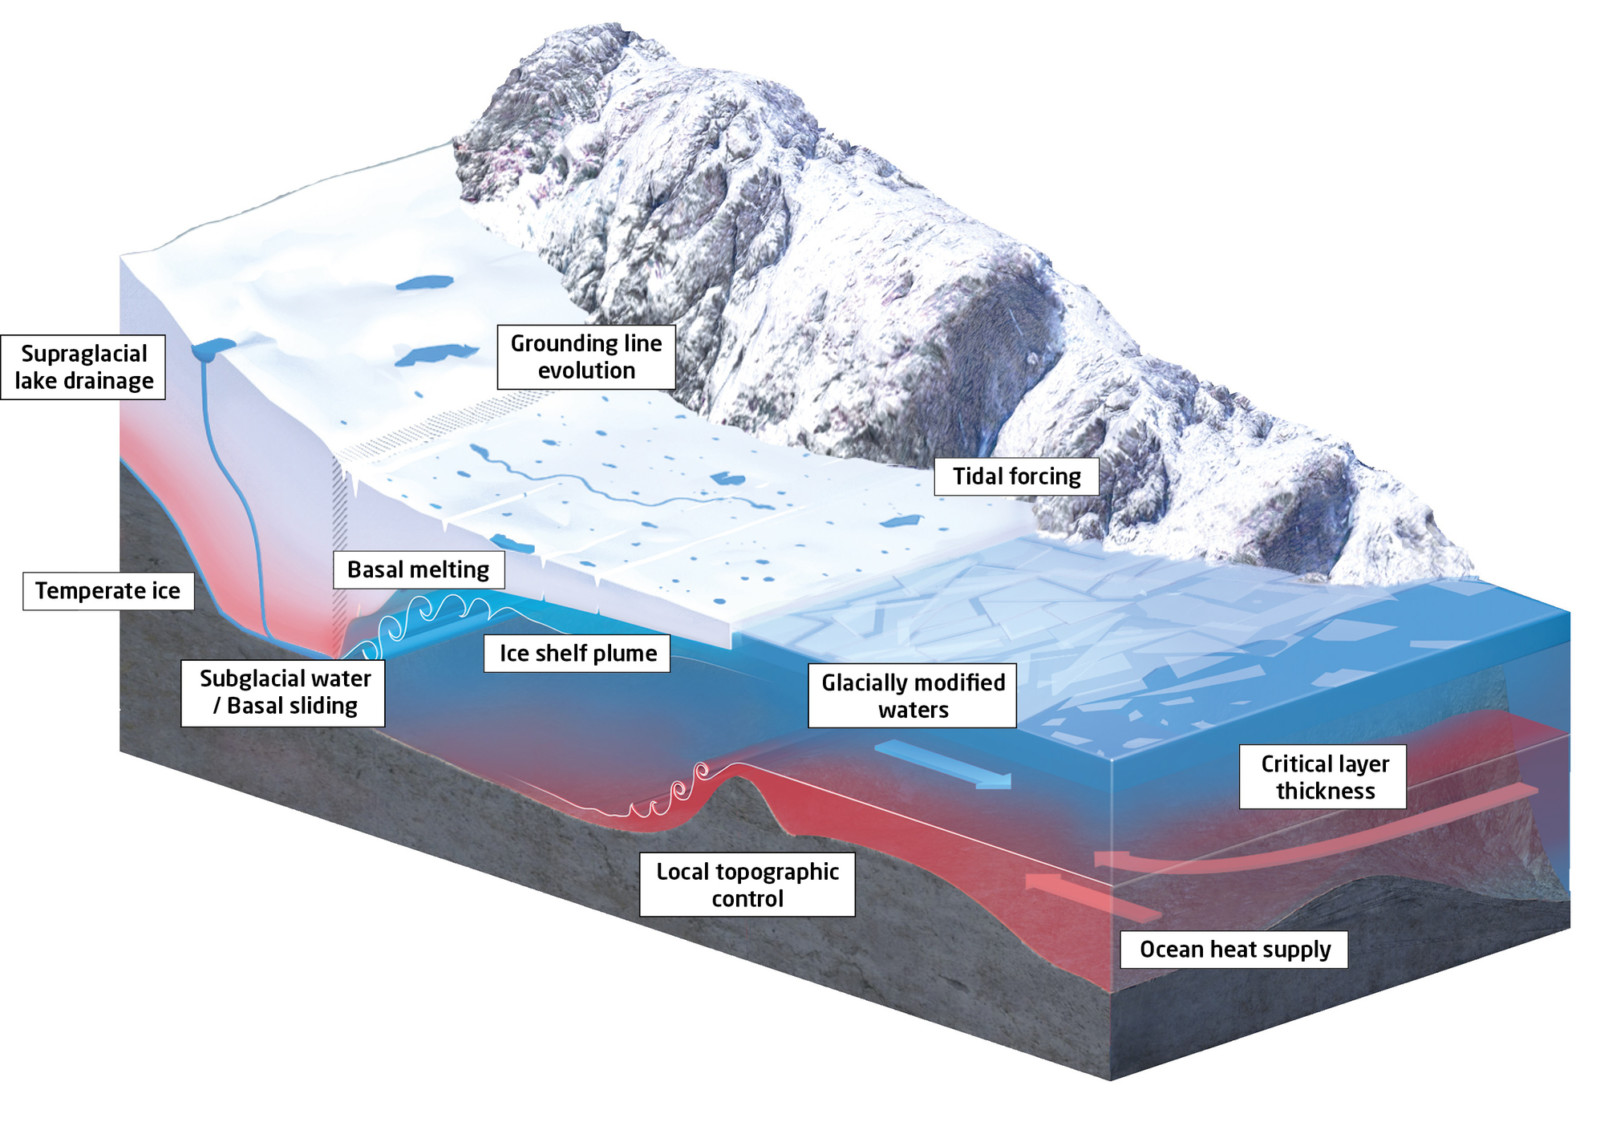 Cryospheric Sciences | A blog hosted by the European